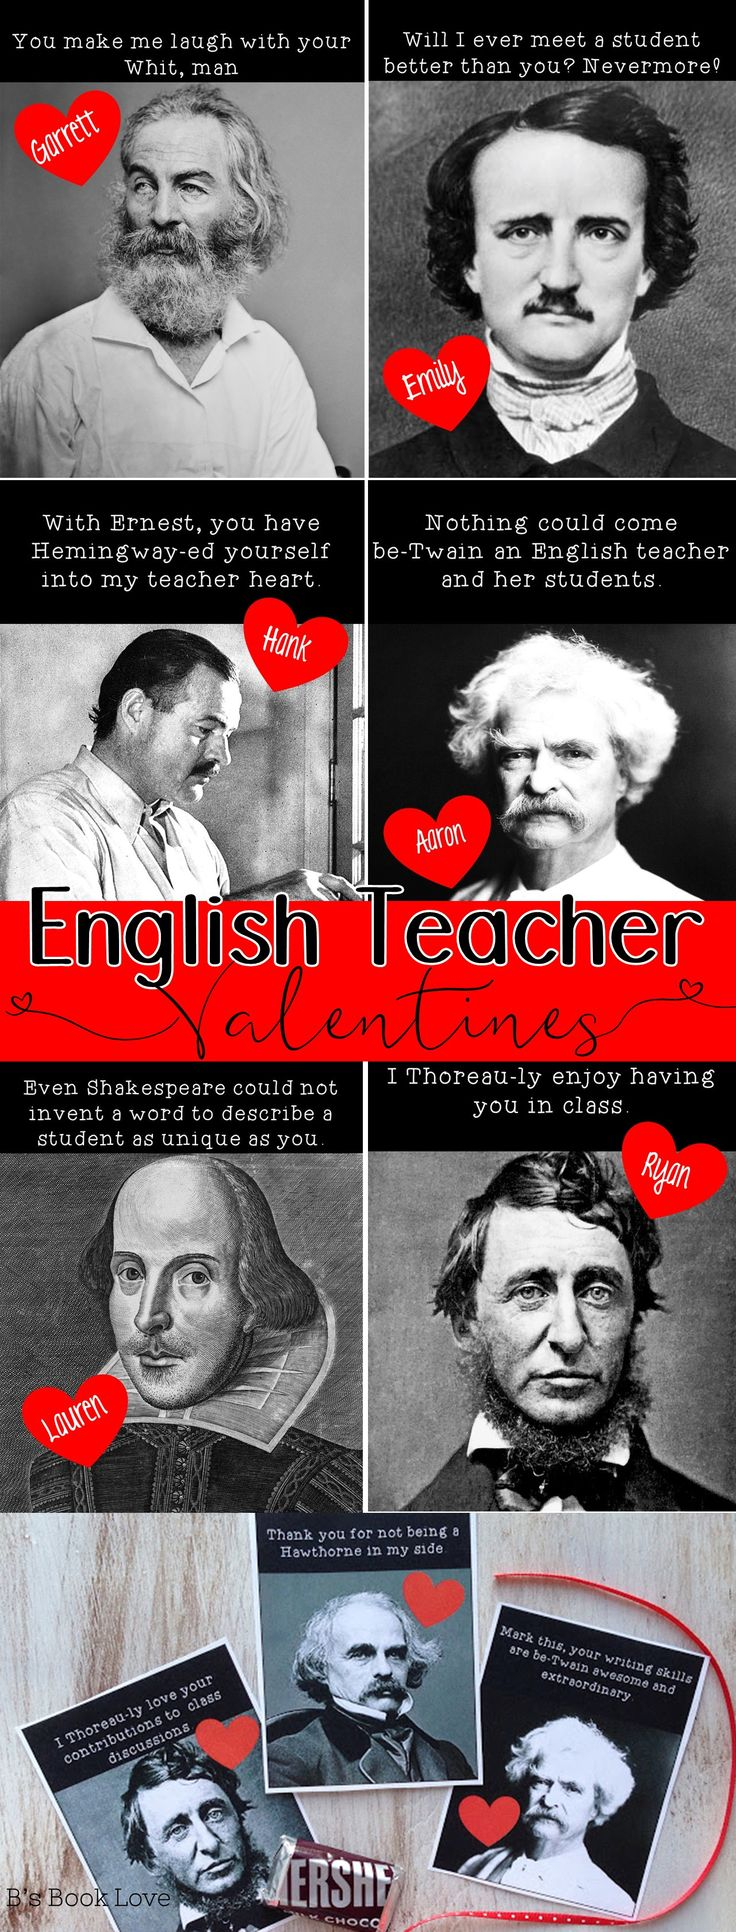 English Teacher Valentines, Library Valentine's Day Posters and Decorations